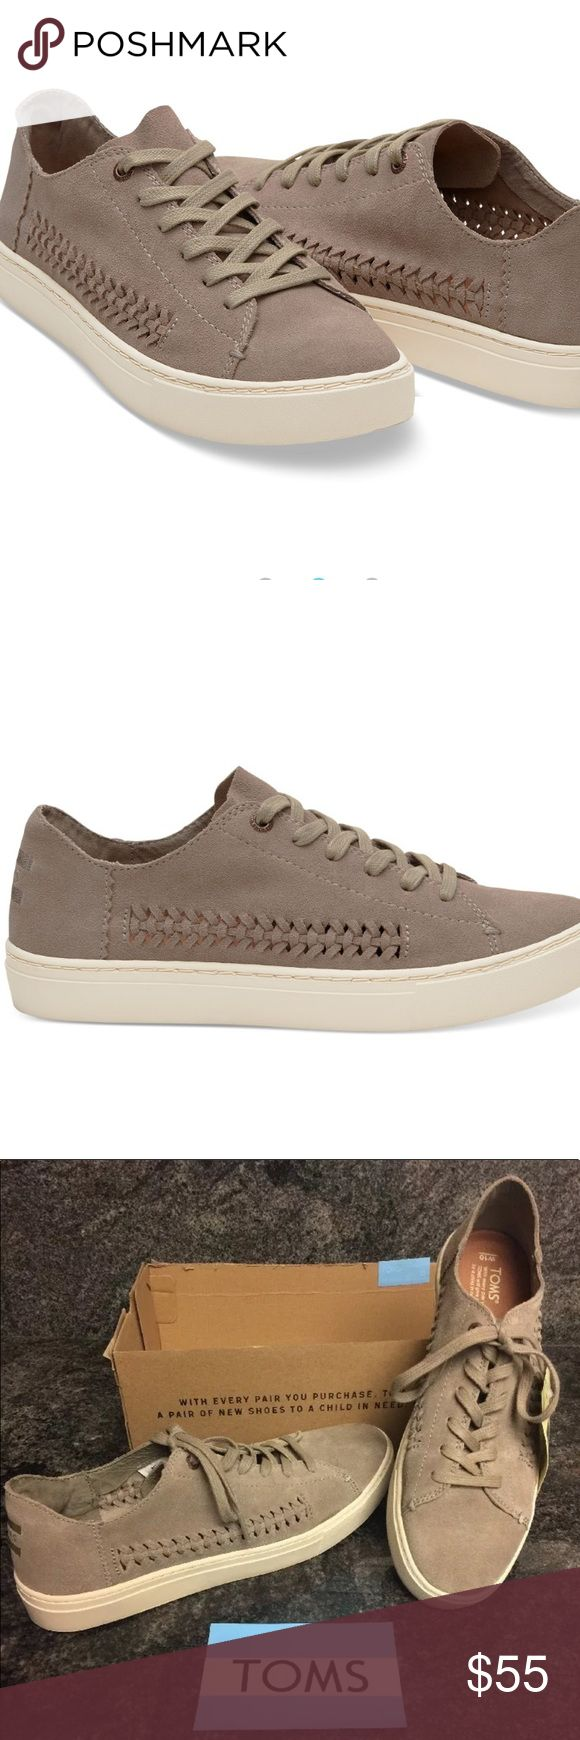 TOMS Desert Taupe Deconstructed Suede Woven Panel TOMS Desert Taupe Deconstructed Suede Woven Panel  Size 10  New  Minimal structure and unlined suede make this Lenox sneaker lightweight and flexible. The woven detail on this low-top sneaker gives it a unique flair. Taupe unlined suede upper Deconstructed Lenox silhouette Removable insole, sock liner that fights bacteria Rubber cupsole with traction Shoes are new with box but the box does not have a top. Right shoe has small blemish in the…